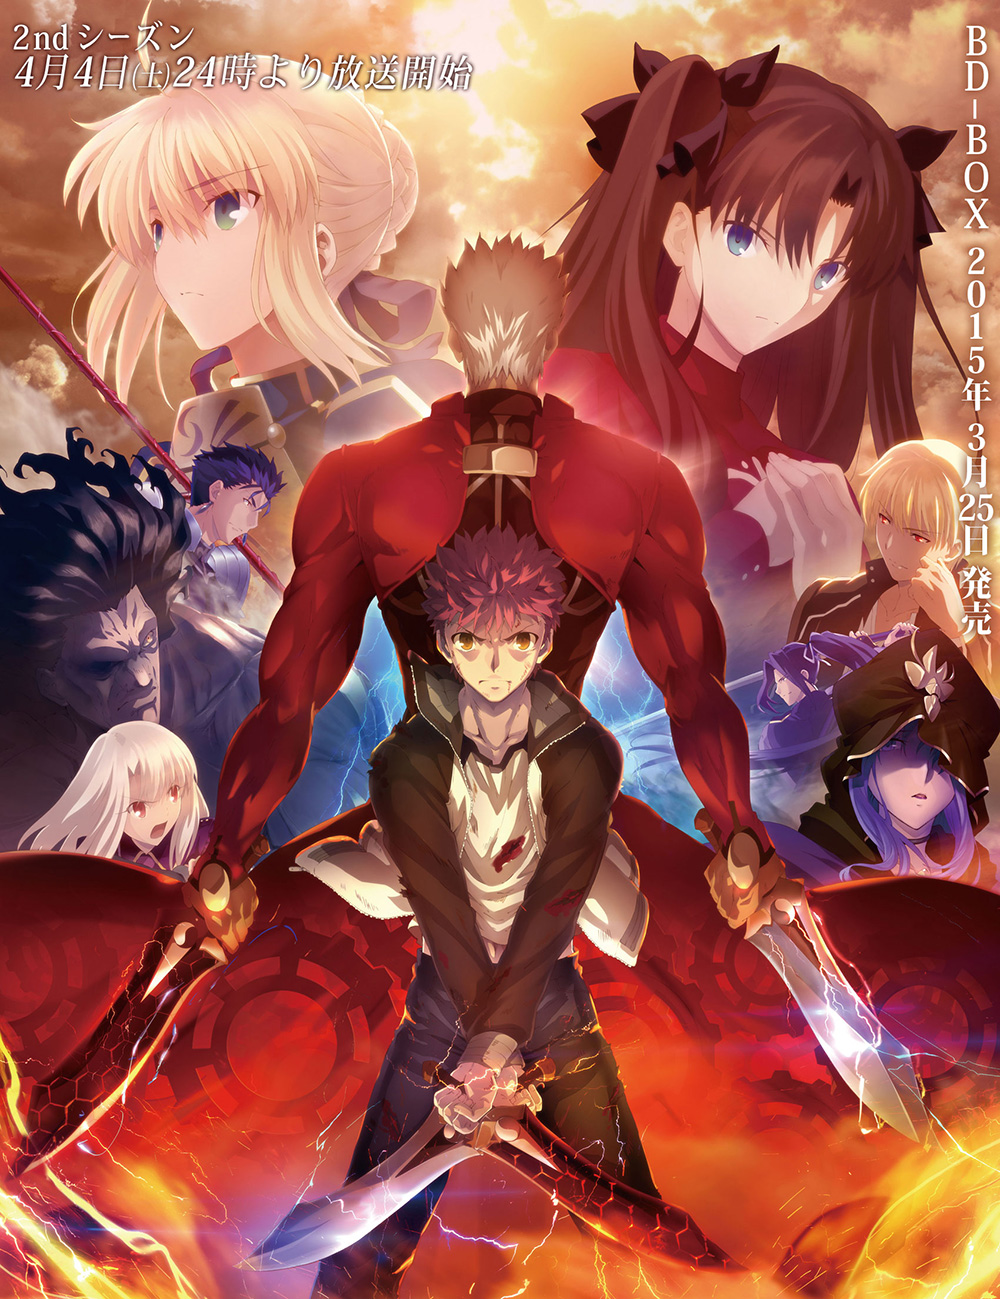 Fate-stay-night-Unlimited-Blade-Works-2nd-Season-Visual